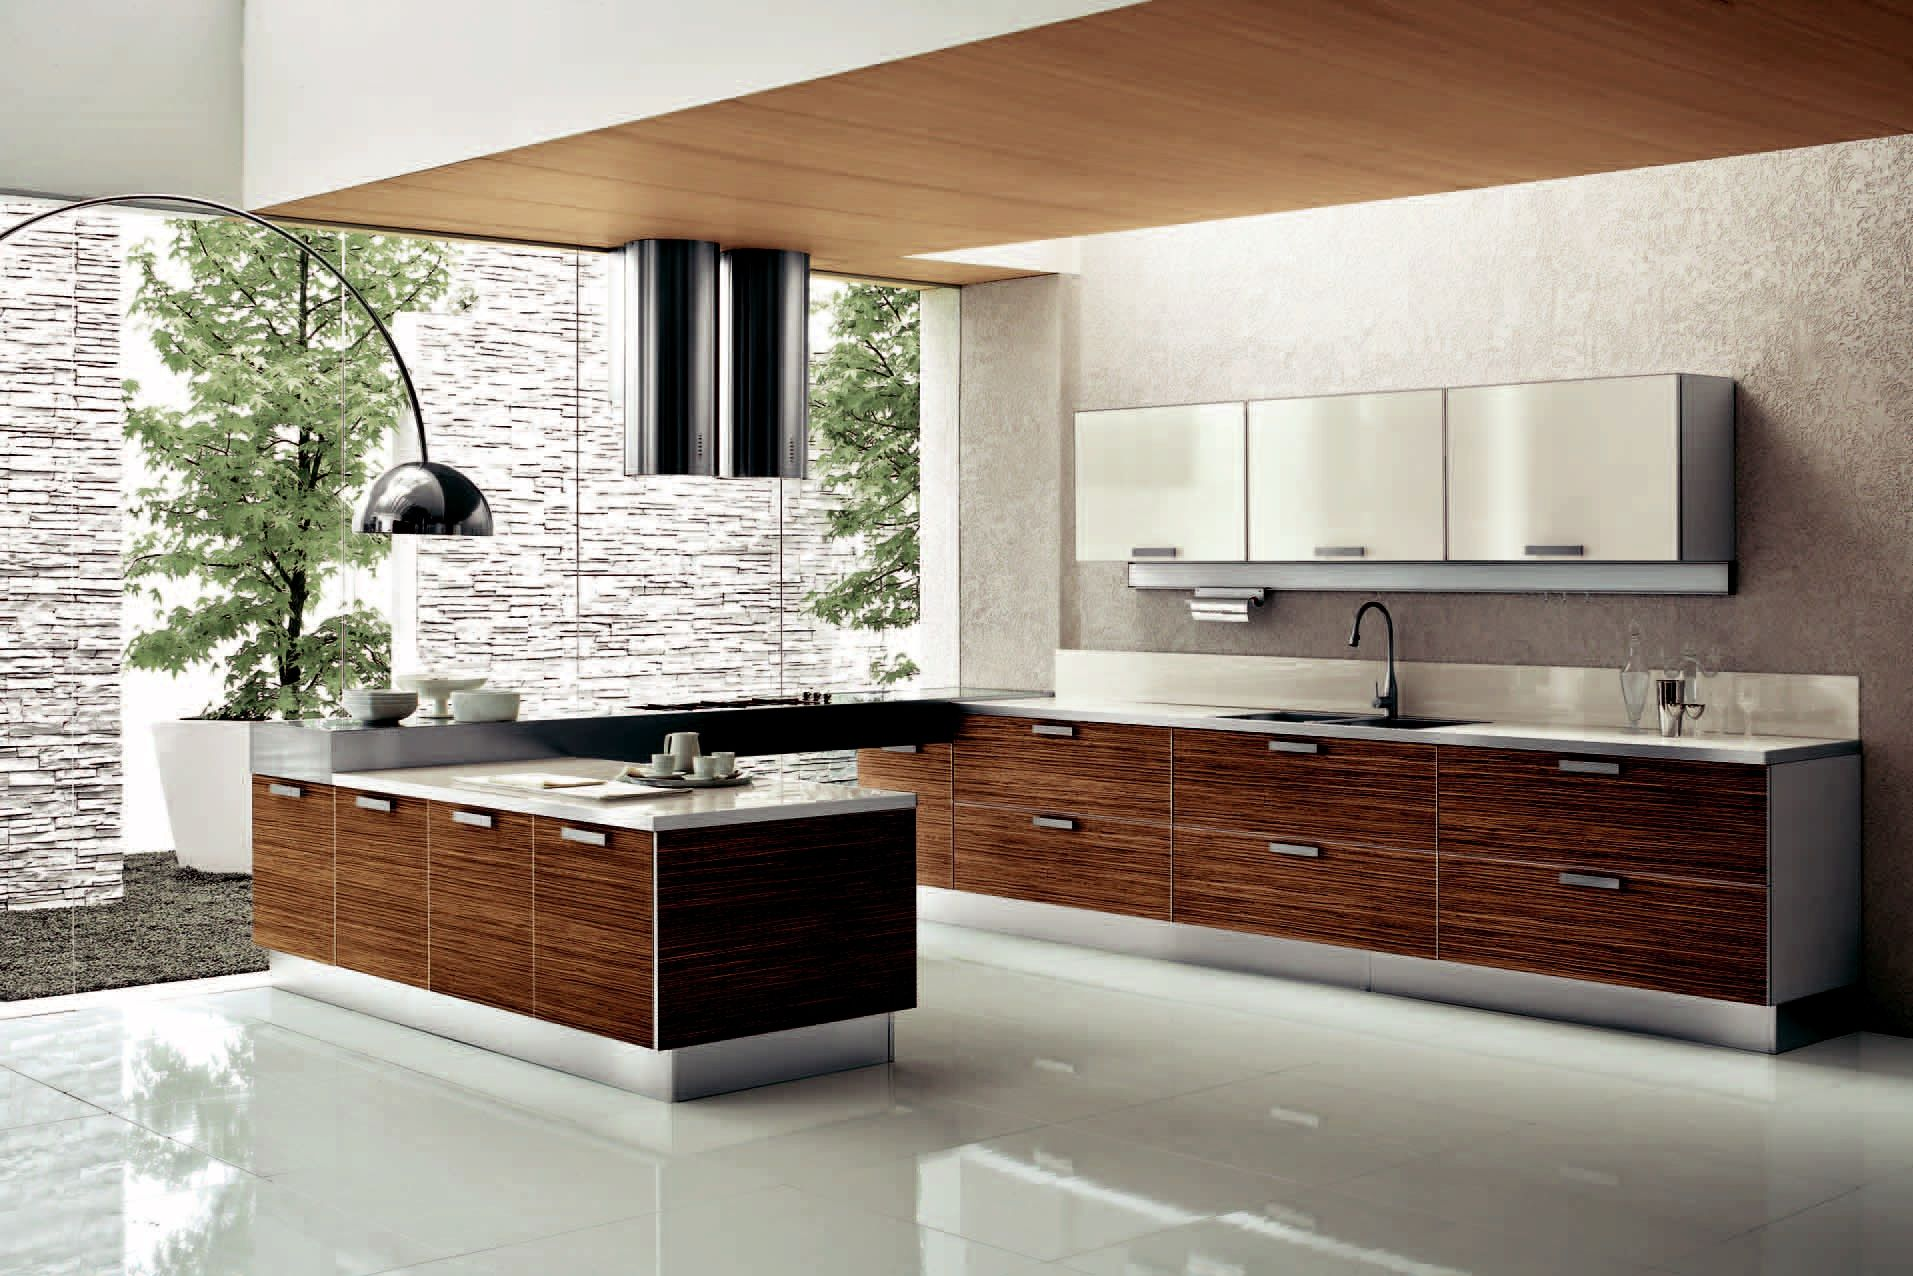 interesting best images about kitchen of the day on pinterest white with modern kitchen design ideas - Cool Modern Kitchens